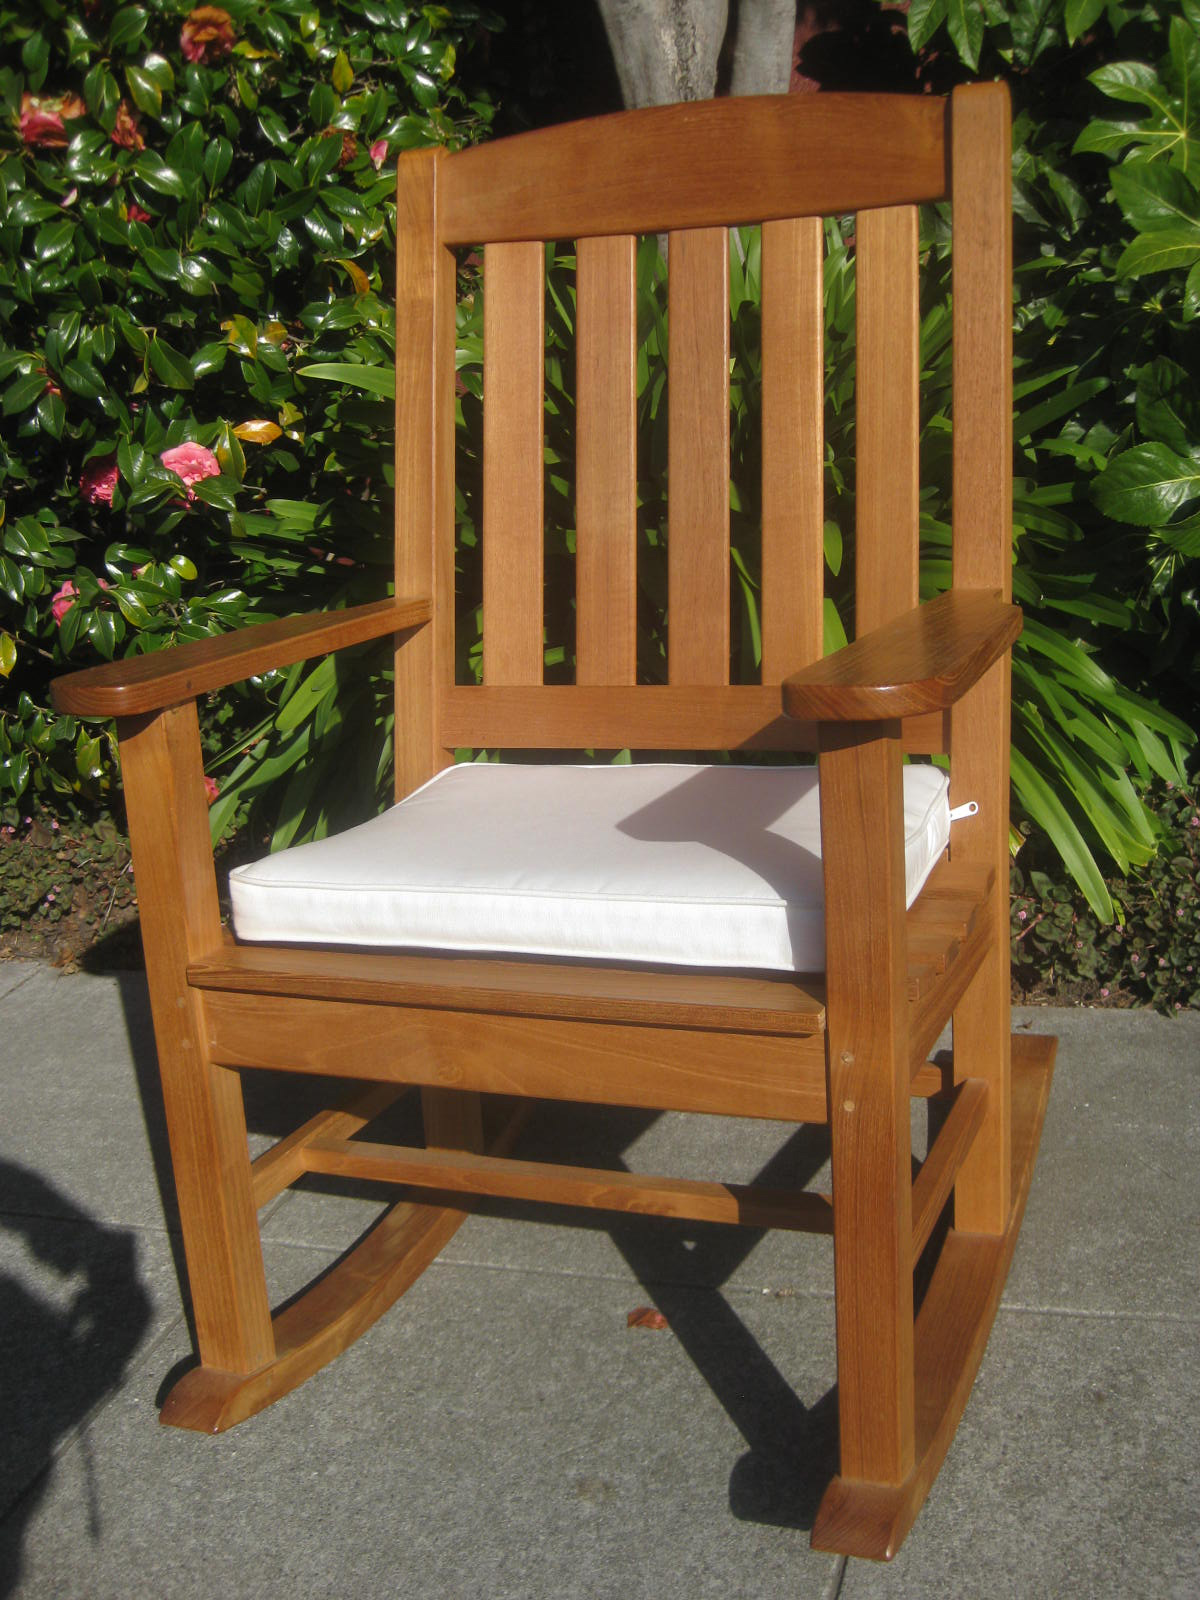 Uhuru furniture collectibles sold smith hawken teak for Smith hawken teak furniture